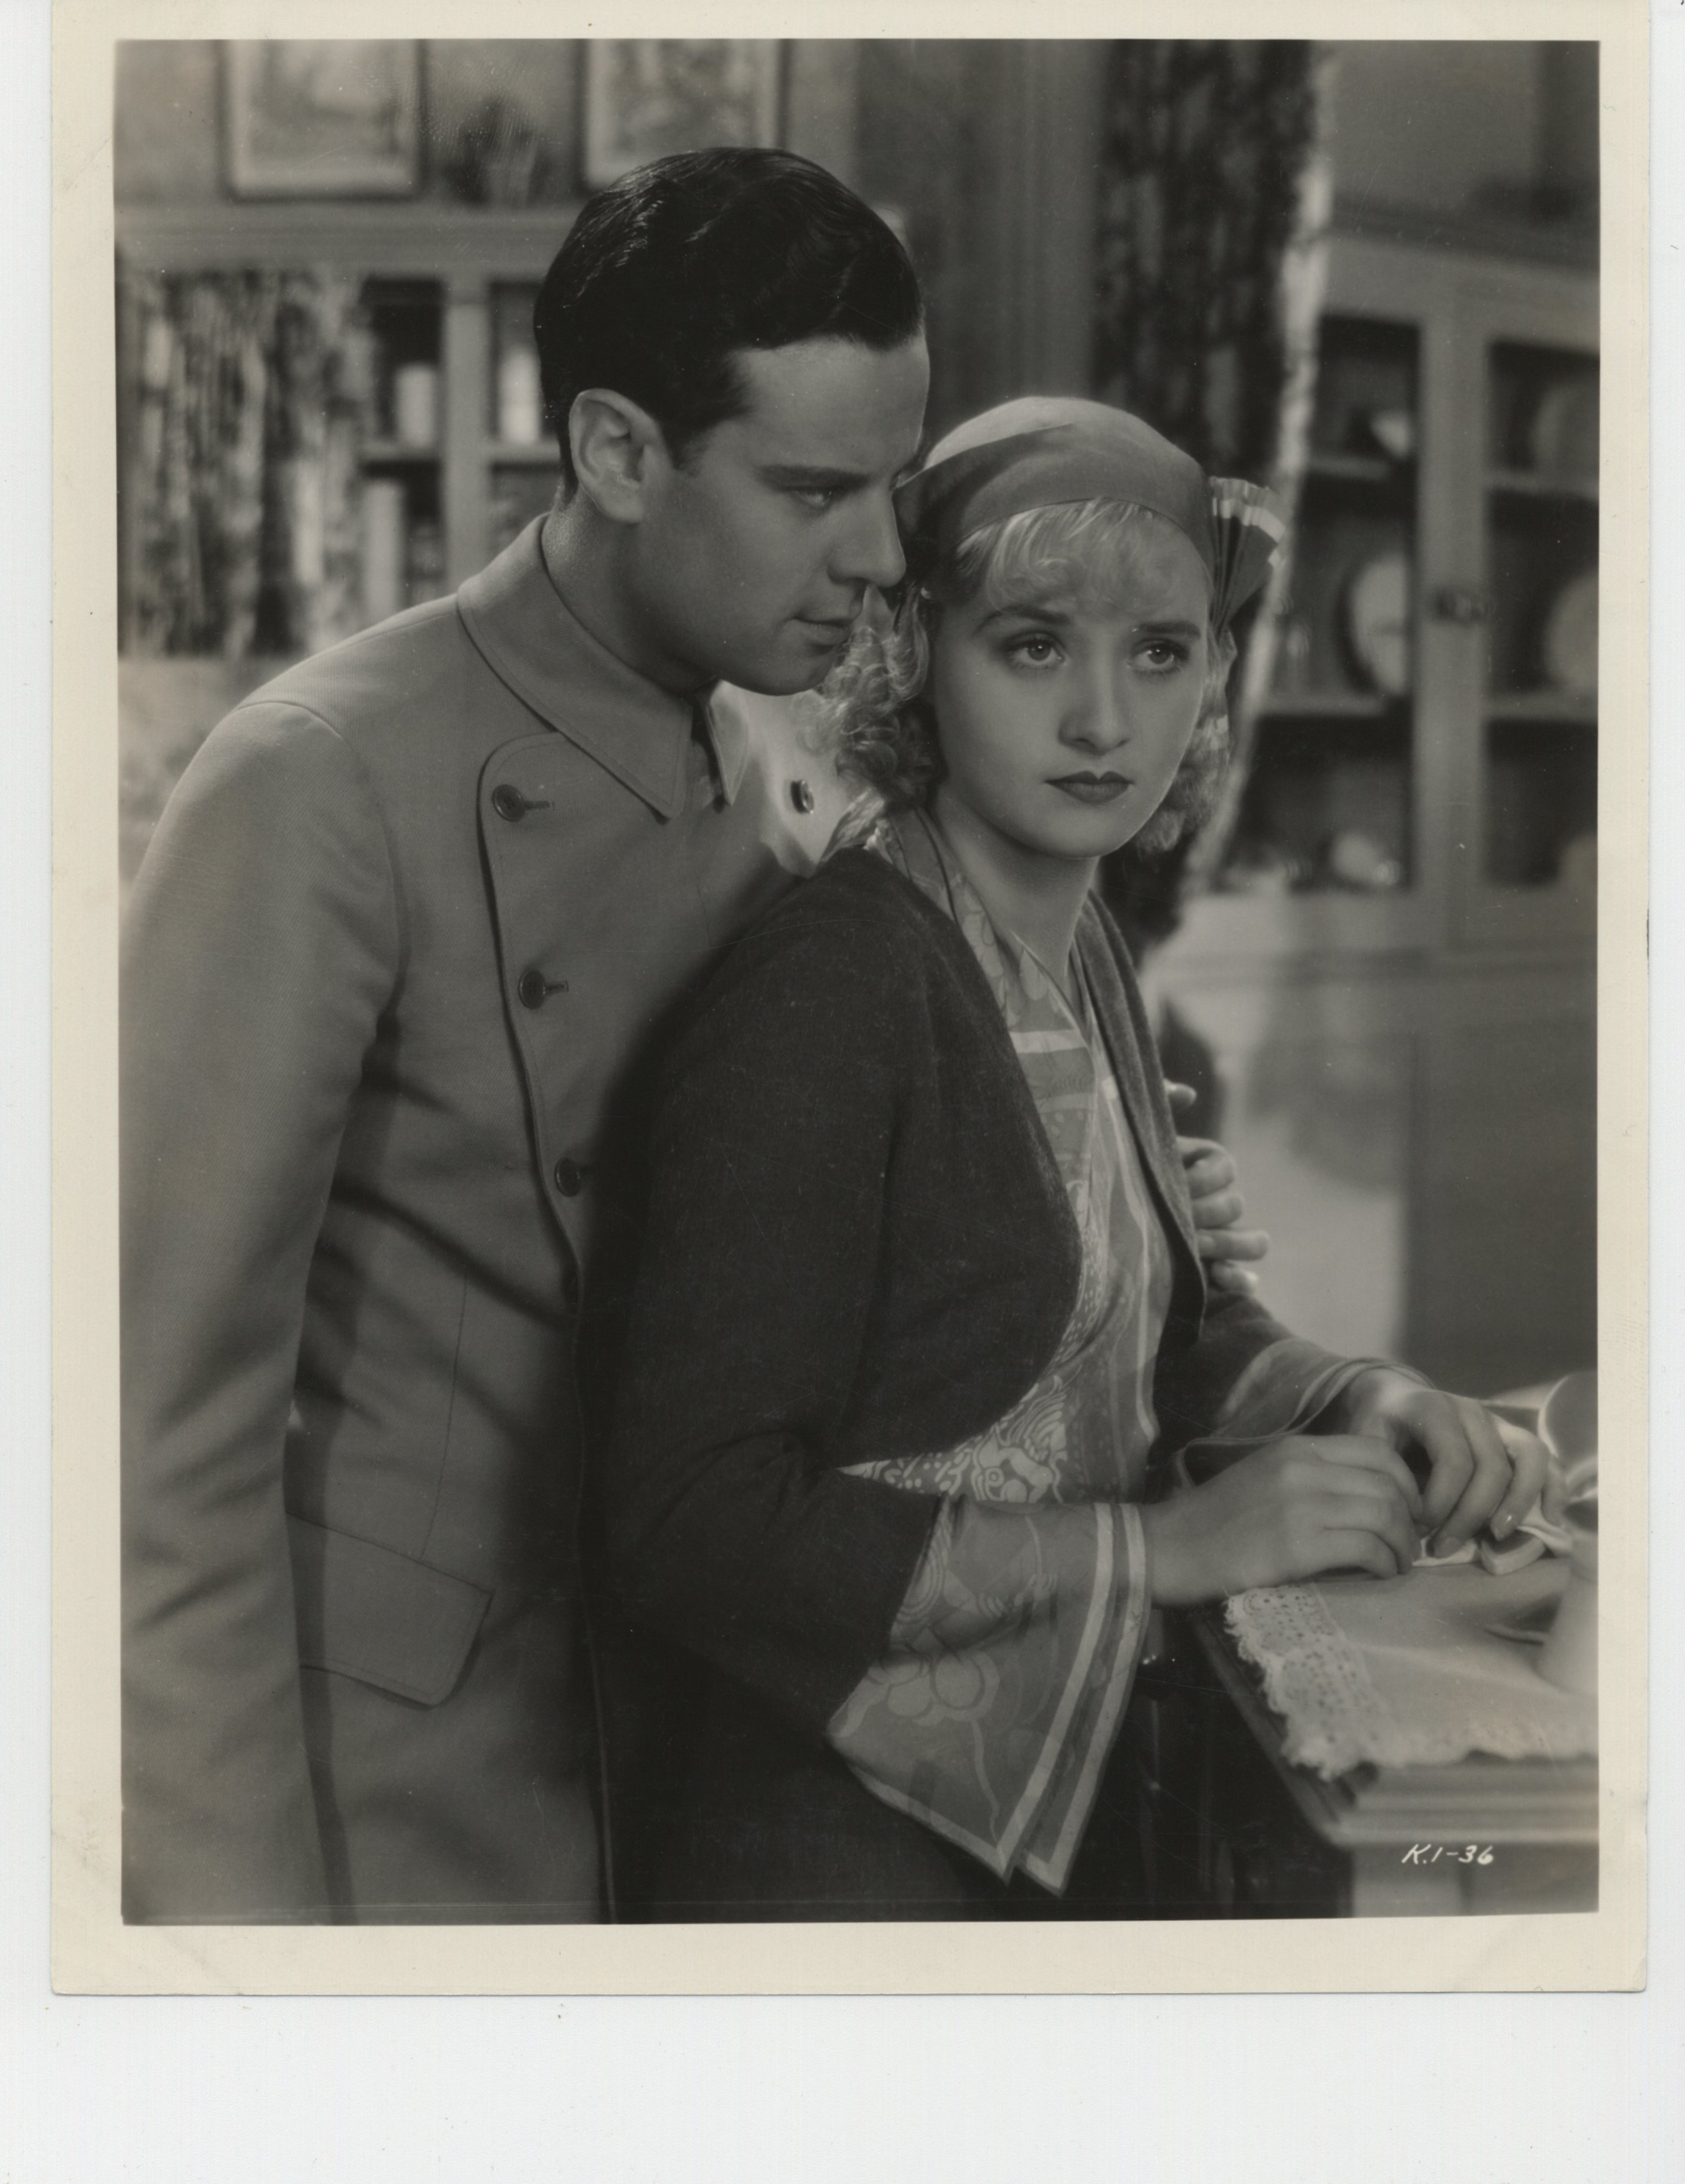 Norman Foster and Marian Marsh in Strange Justice (1932)